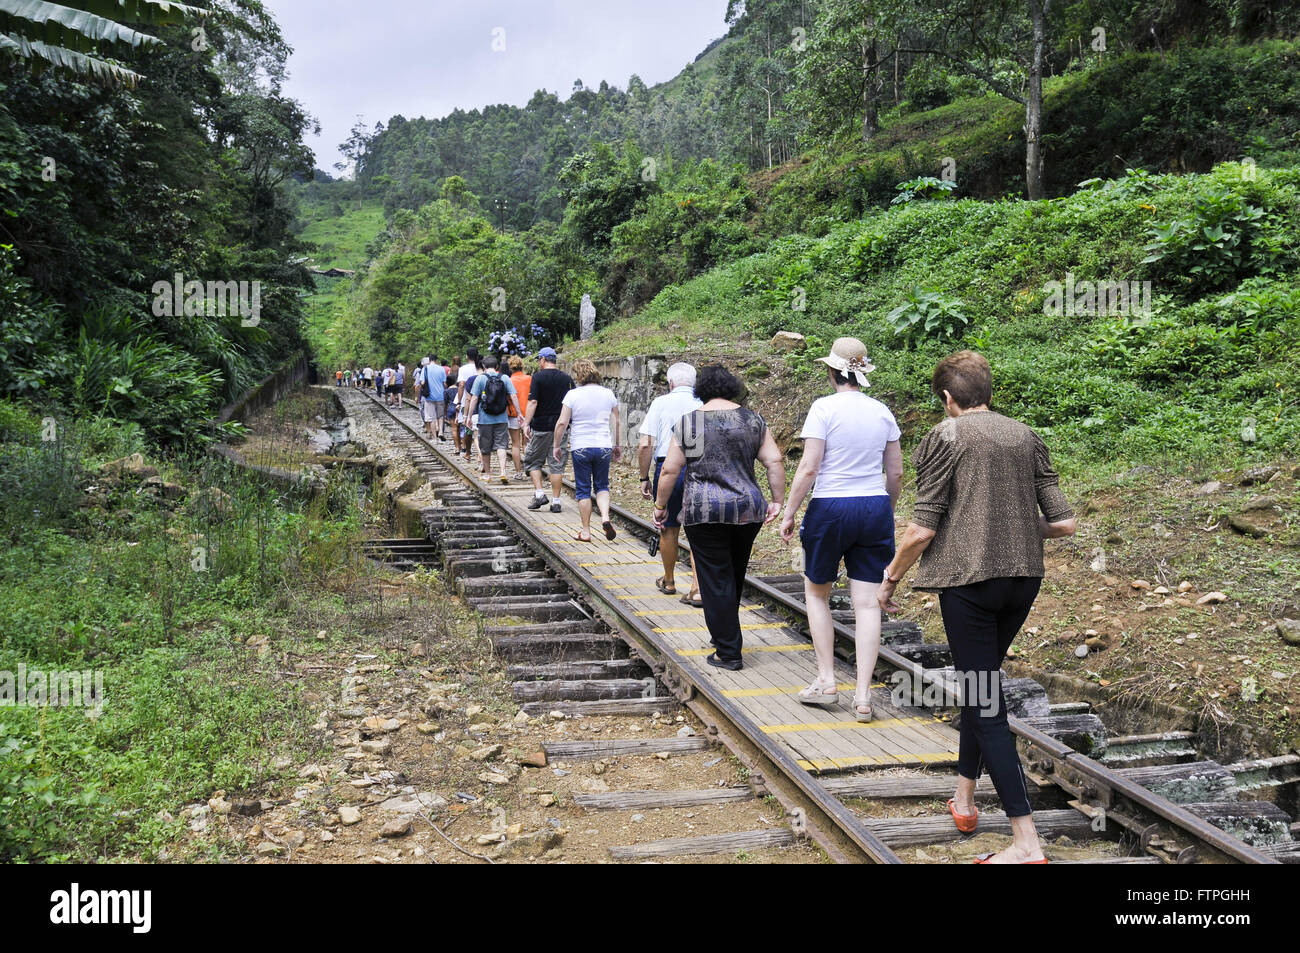 Tourists walking on the tracks in the direction of the tunnel Mantiqueira - Stock Image